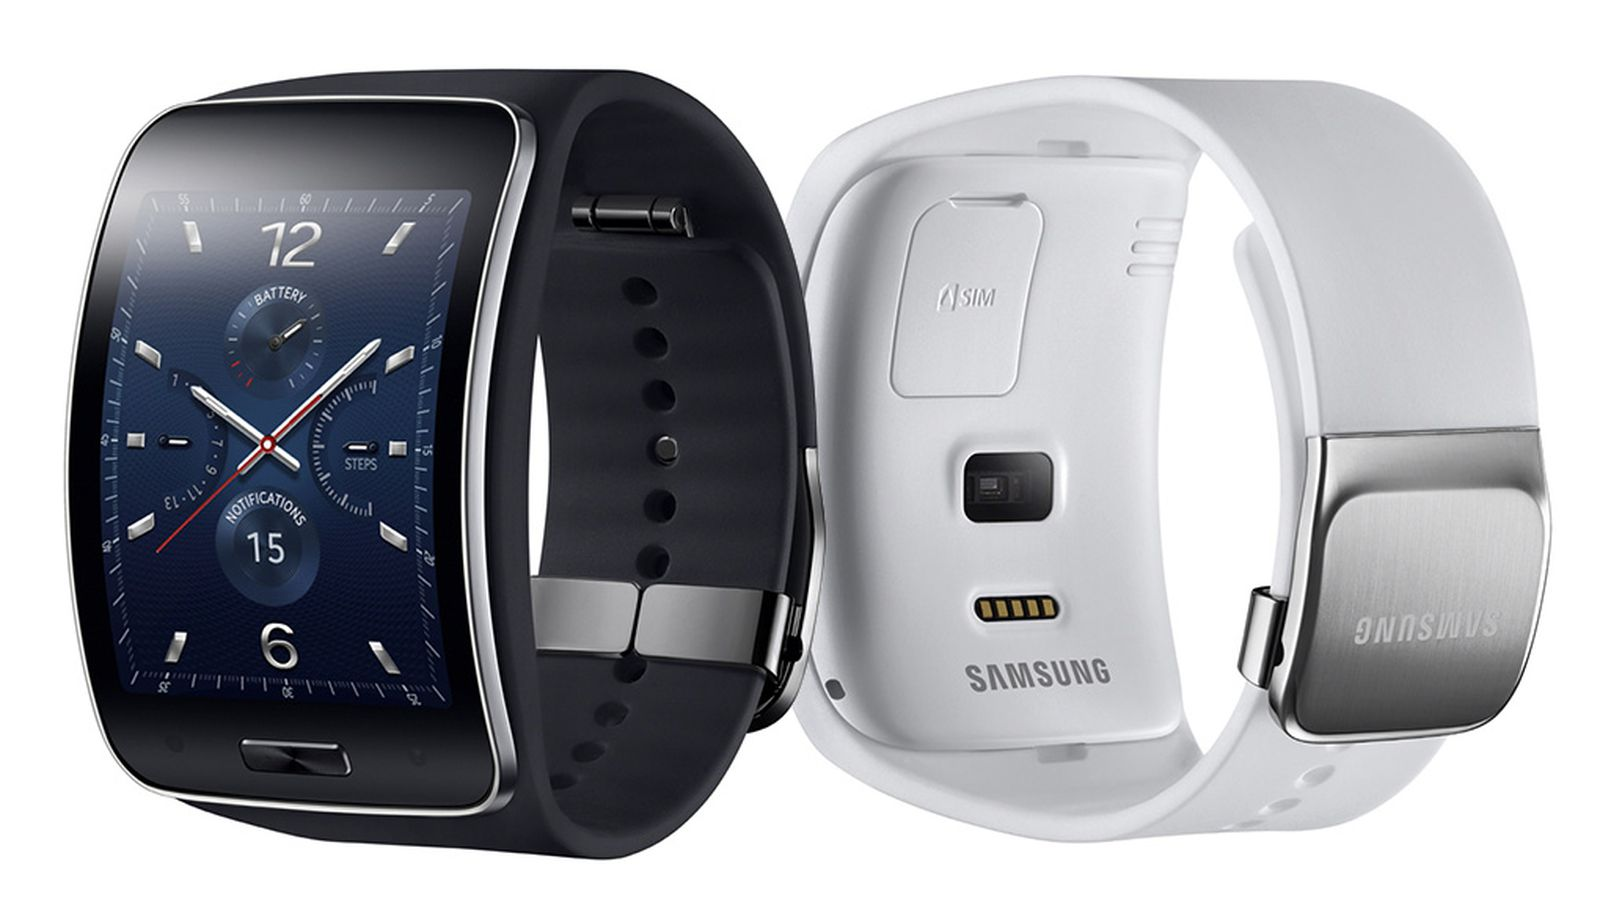 samsung announces curved gear s smartwatch with 3g the verge. Black Bedroom Furniture Sets. Home Design Ideas